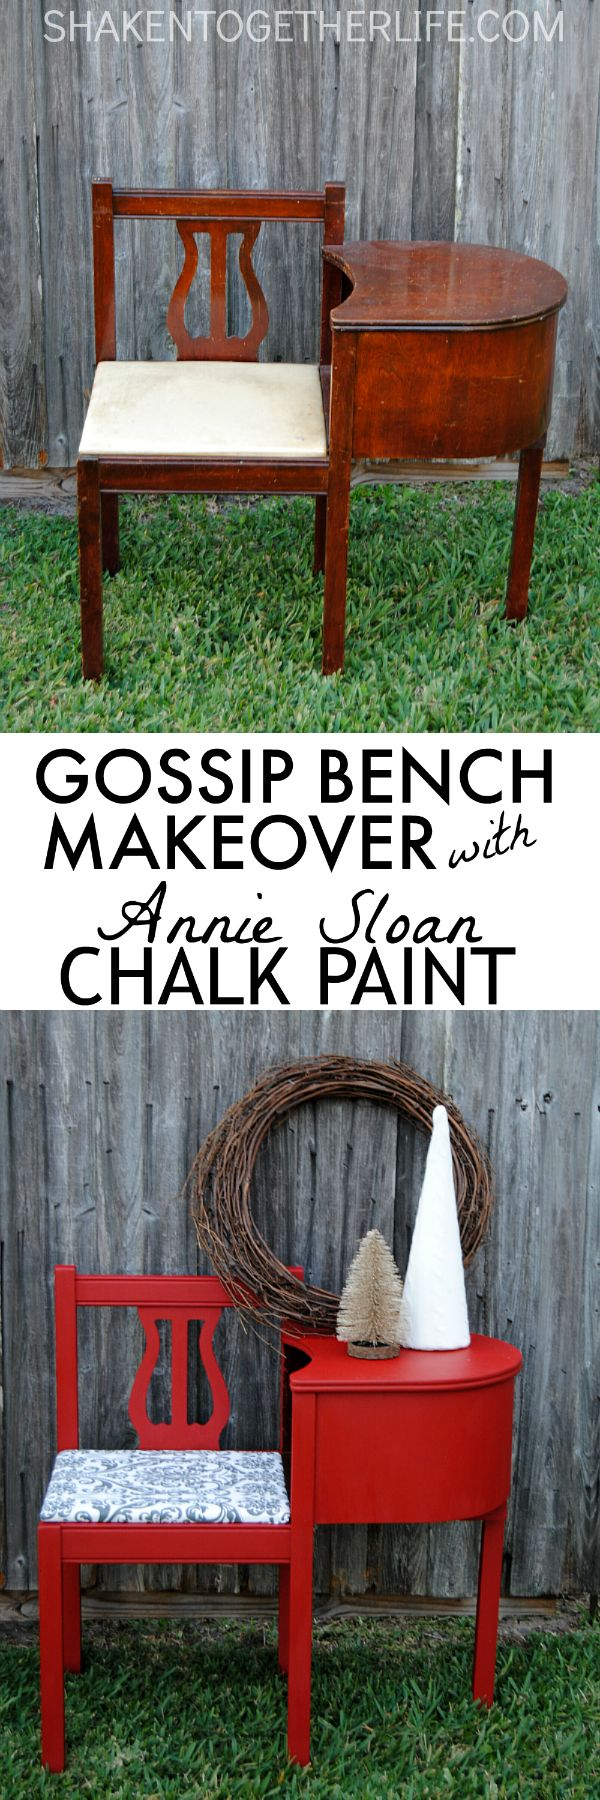 Gorgeous gossip bench makeover with Annie Sloan Chalk Paint - love this sassy red gossip bench!!